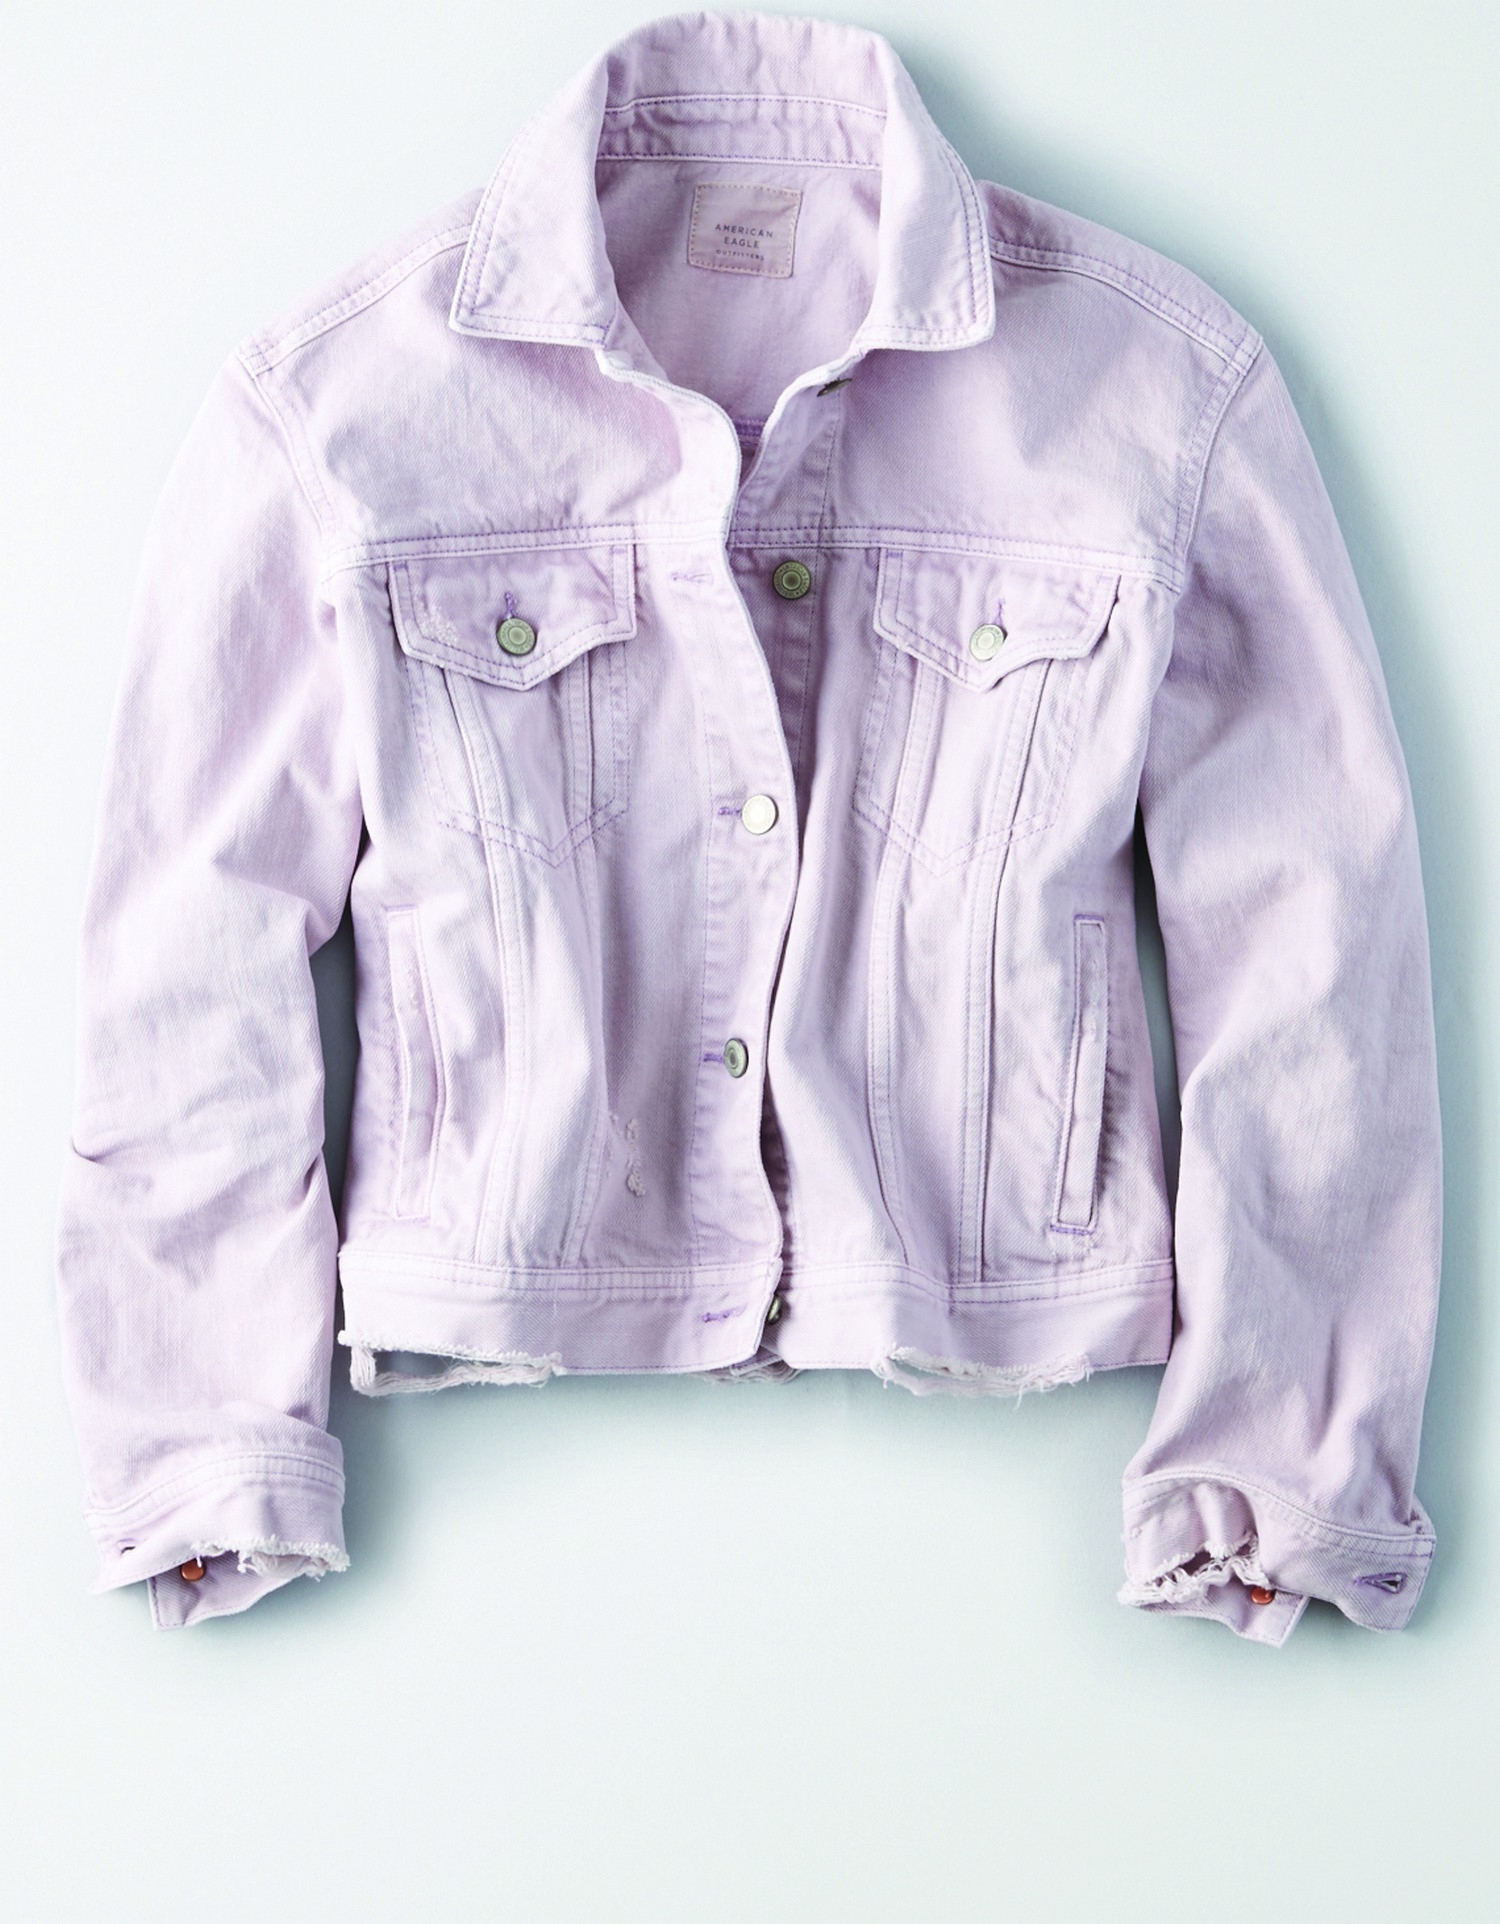 AE - W - Apparel - LAVENDER CLASSIC DENIM JACKET - Lavender Wash - Silver Buttons - Light Destroy around Bottom Fringe - Two Chest Pockets BG *Tracked